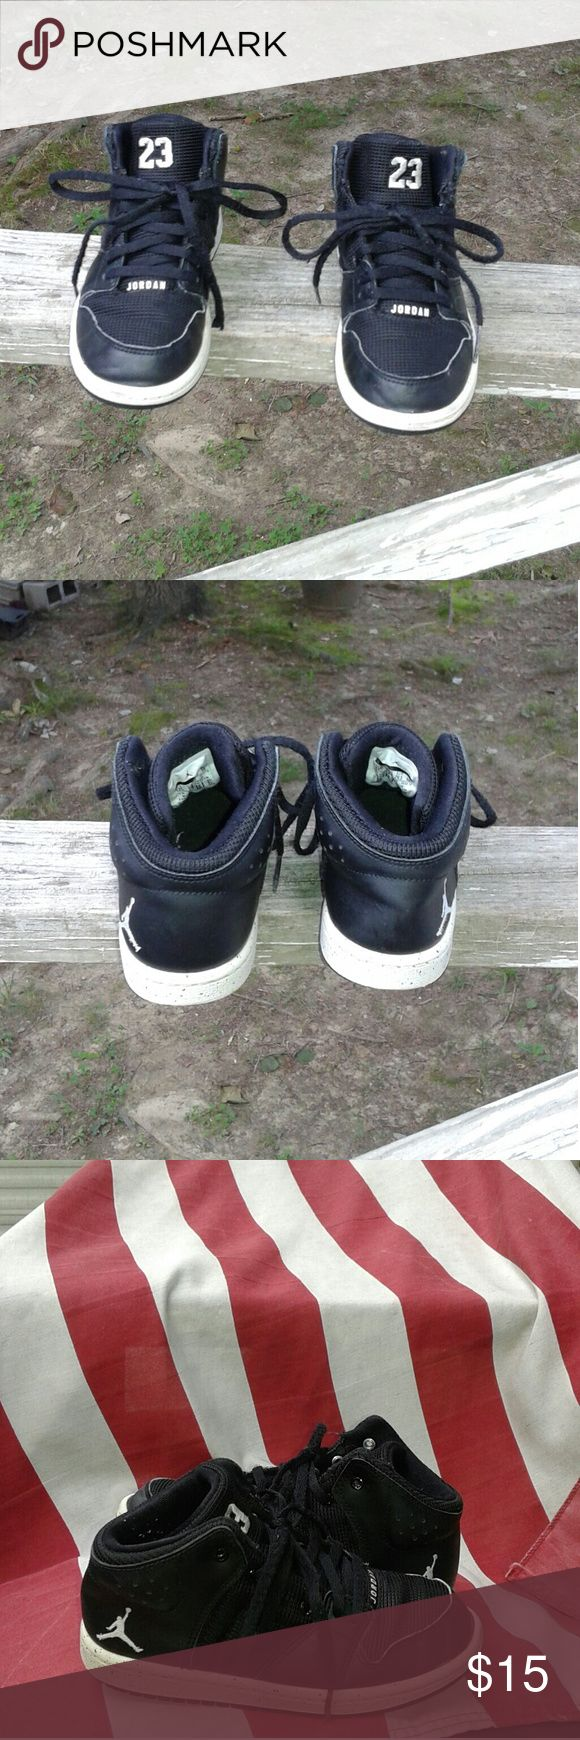 Nike Air Jordan #23 Boys Shoes Size 12c This is a used pair of Nike Air Jordan #23 toddler boy's Shoe's size 12c, they are black and white high top shoe's. #828243-020. There is some wear on both shoes on the bottom at the heels. They are no holes or tears on either shoe. Please view the pictures and if you have any questions please ask. Nike Air Jordan #23  Shoes Sneakers